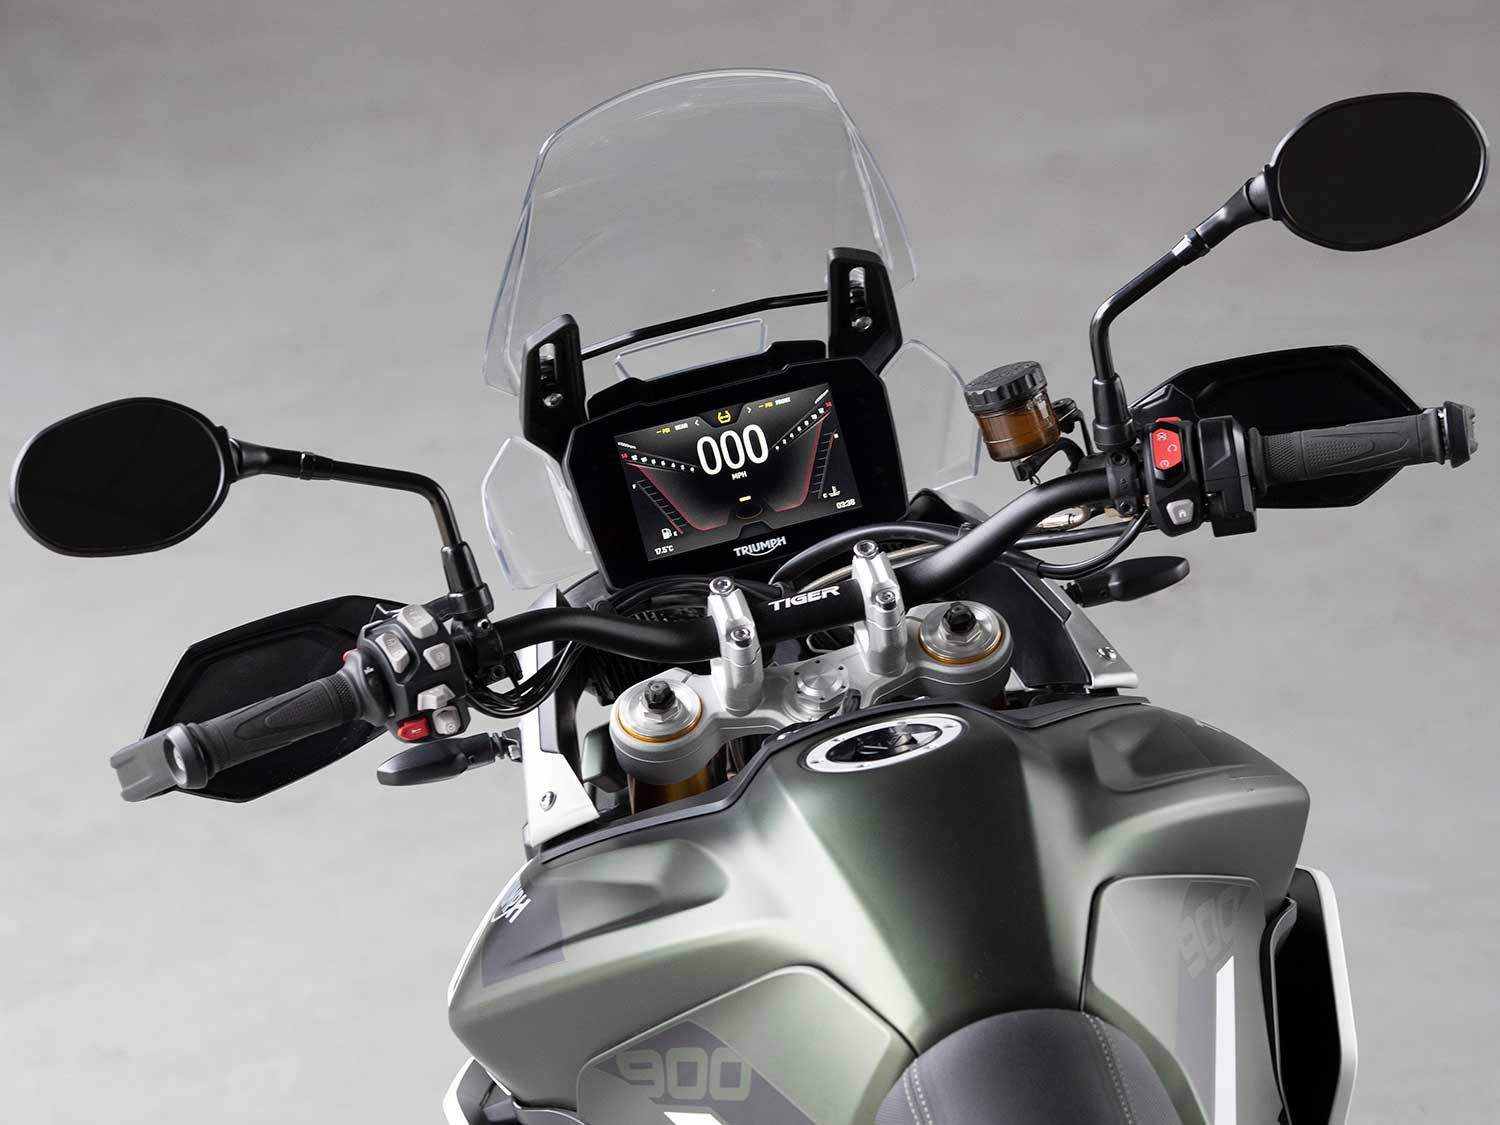 Up-spec Tiger 900s come outfitted with a 7-inch color TFT display. The base version uses a 5-inch panel.